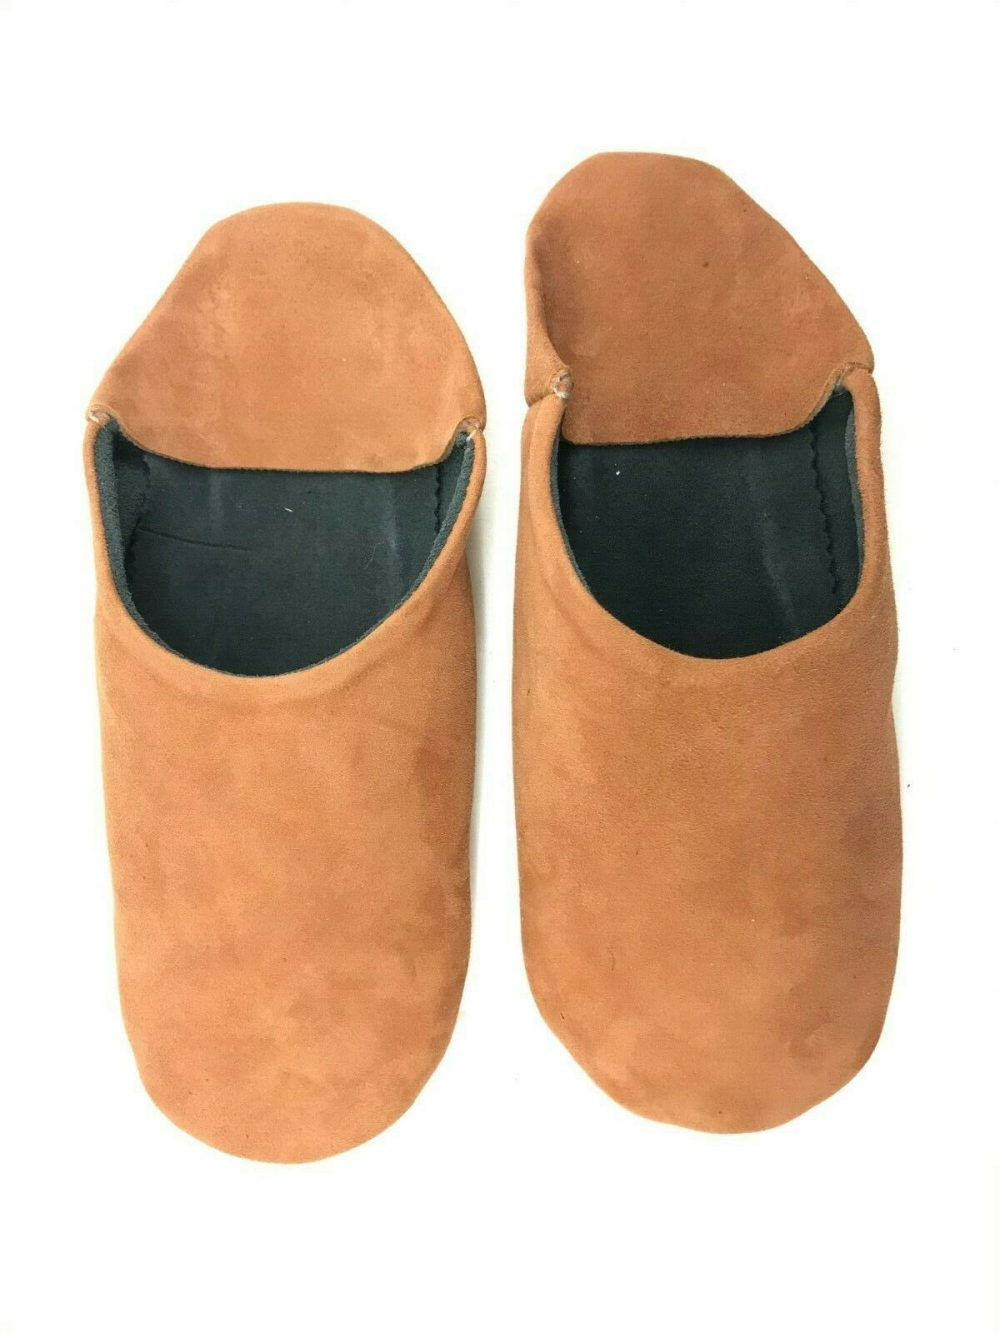 MOROCCAN LEATHER BABOUCHE SLIPPERS SOFT SUEDE MULES SLIDES LOAFERS *HANDMADE*